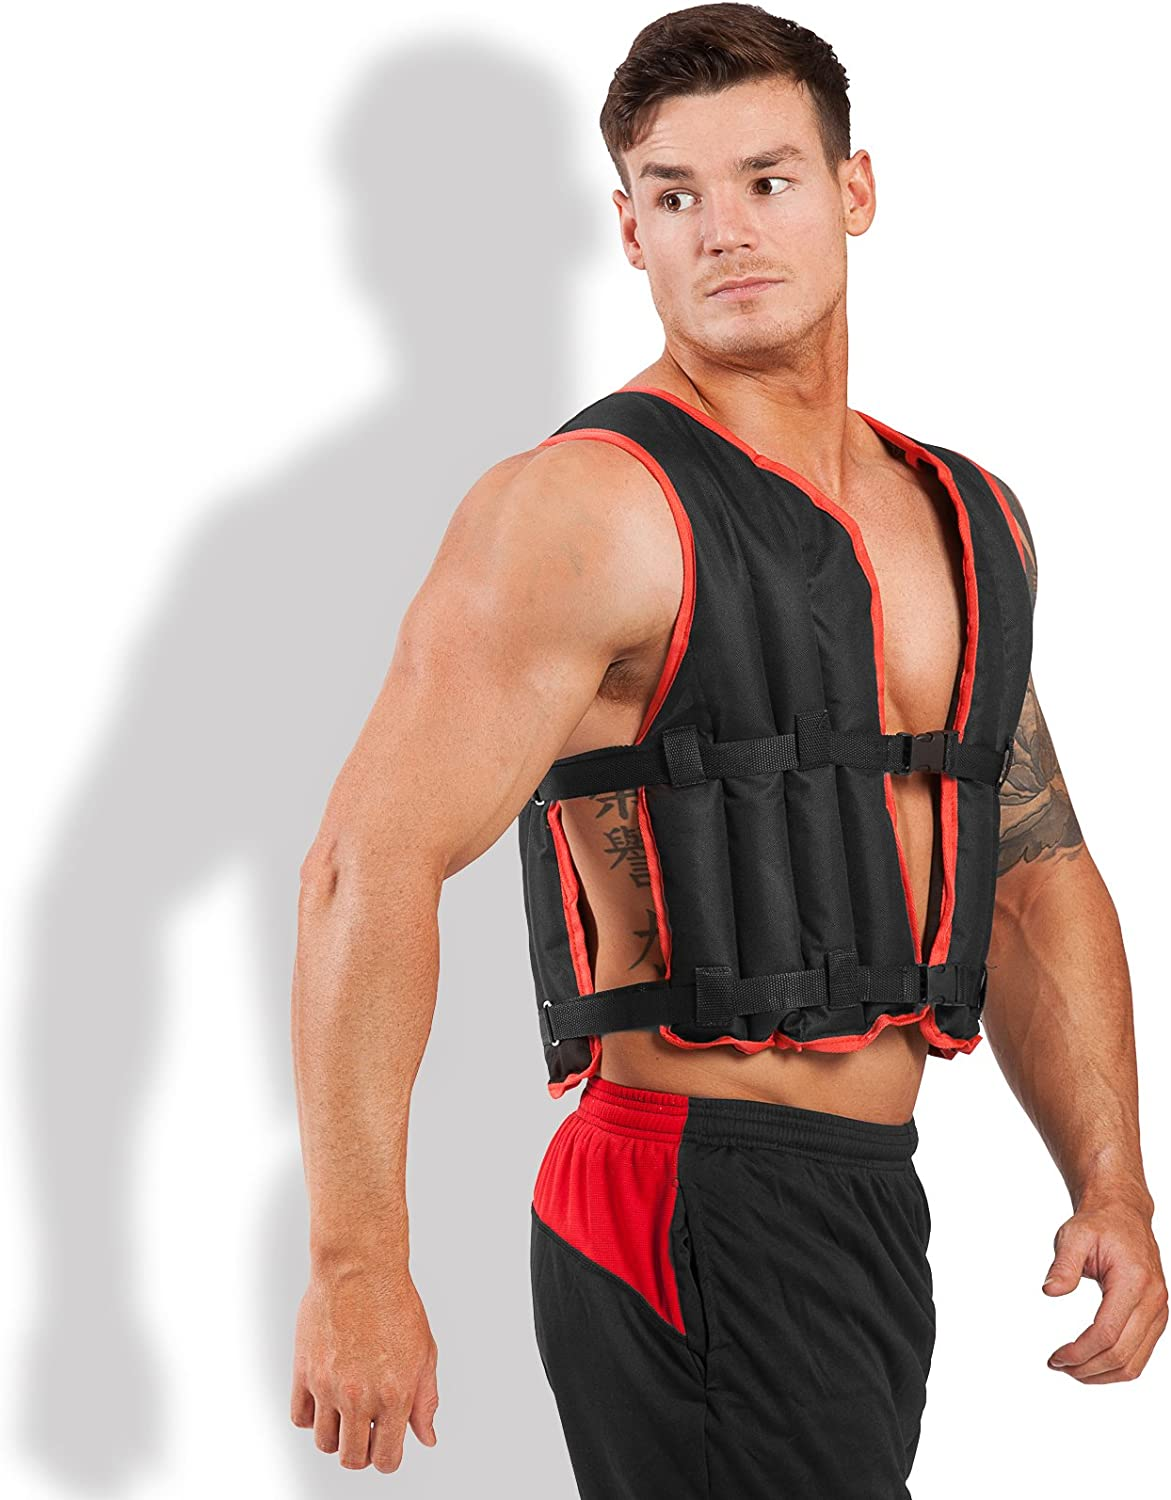 AYNEFY Strength Training Vest 10kg Unisex Weighted Vest Diving Elastic Cloth Invisible Weighted Jacket with Adjustable Buckle for Exercise Workout Fitness Running Boxing Fat Loss